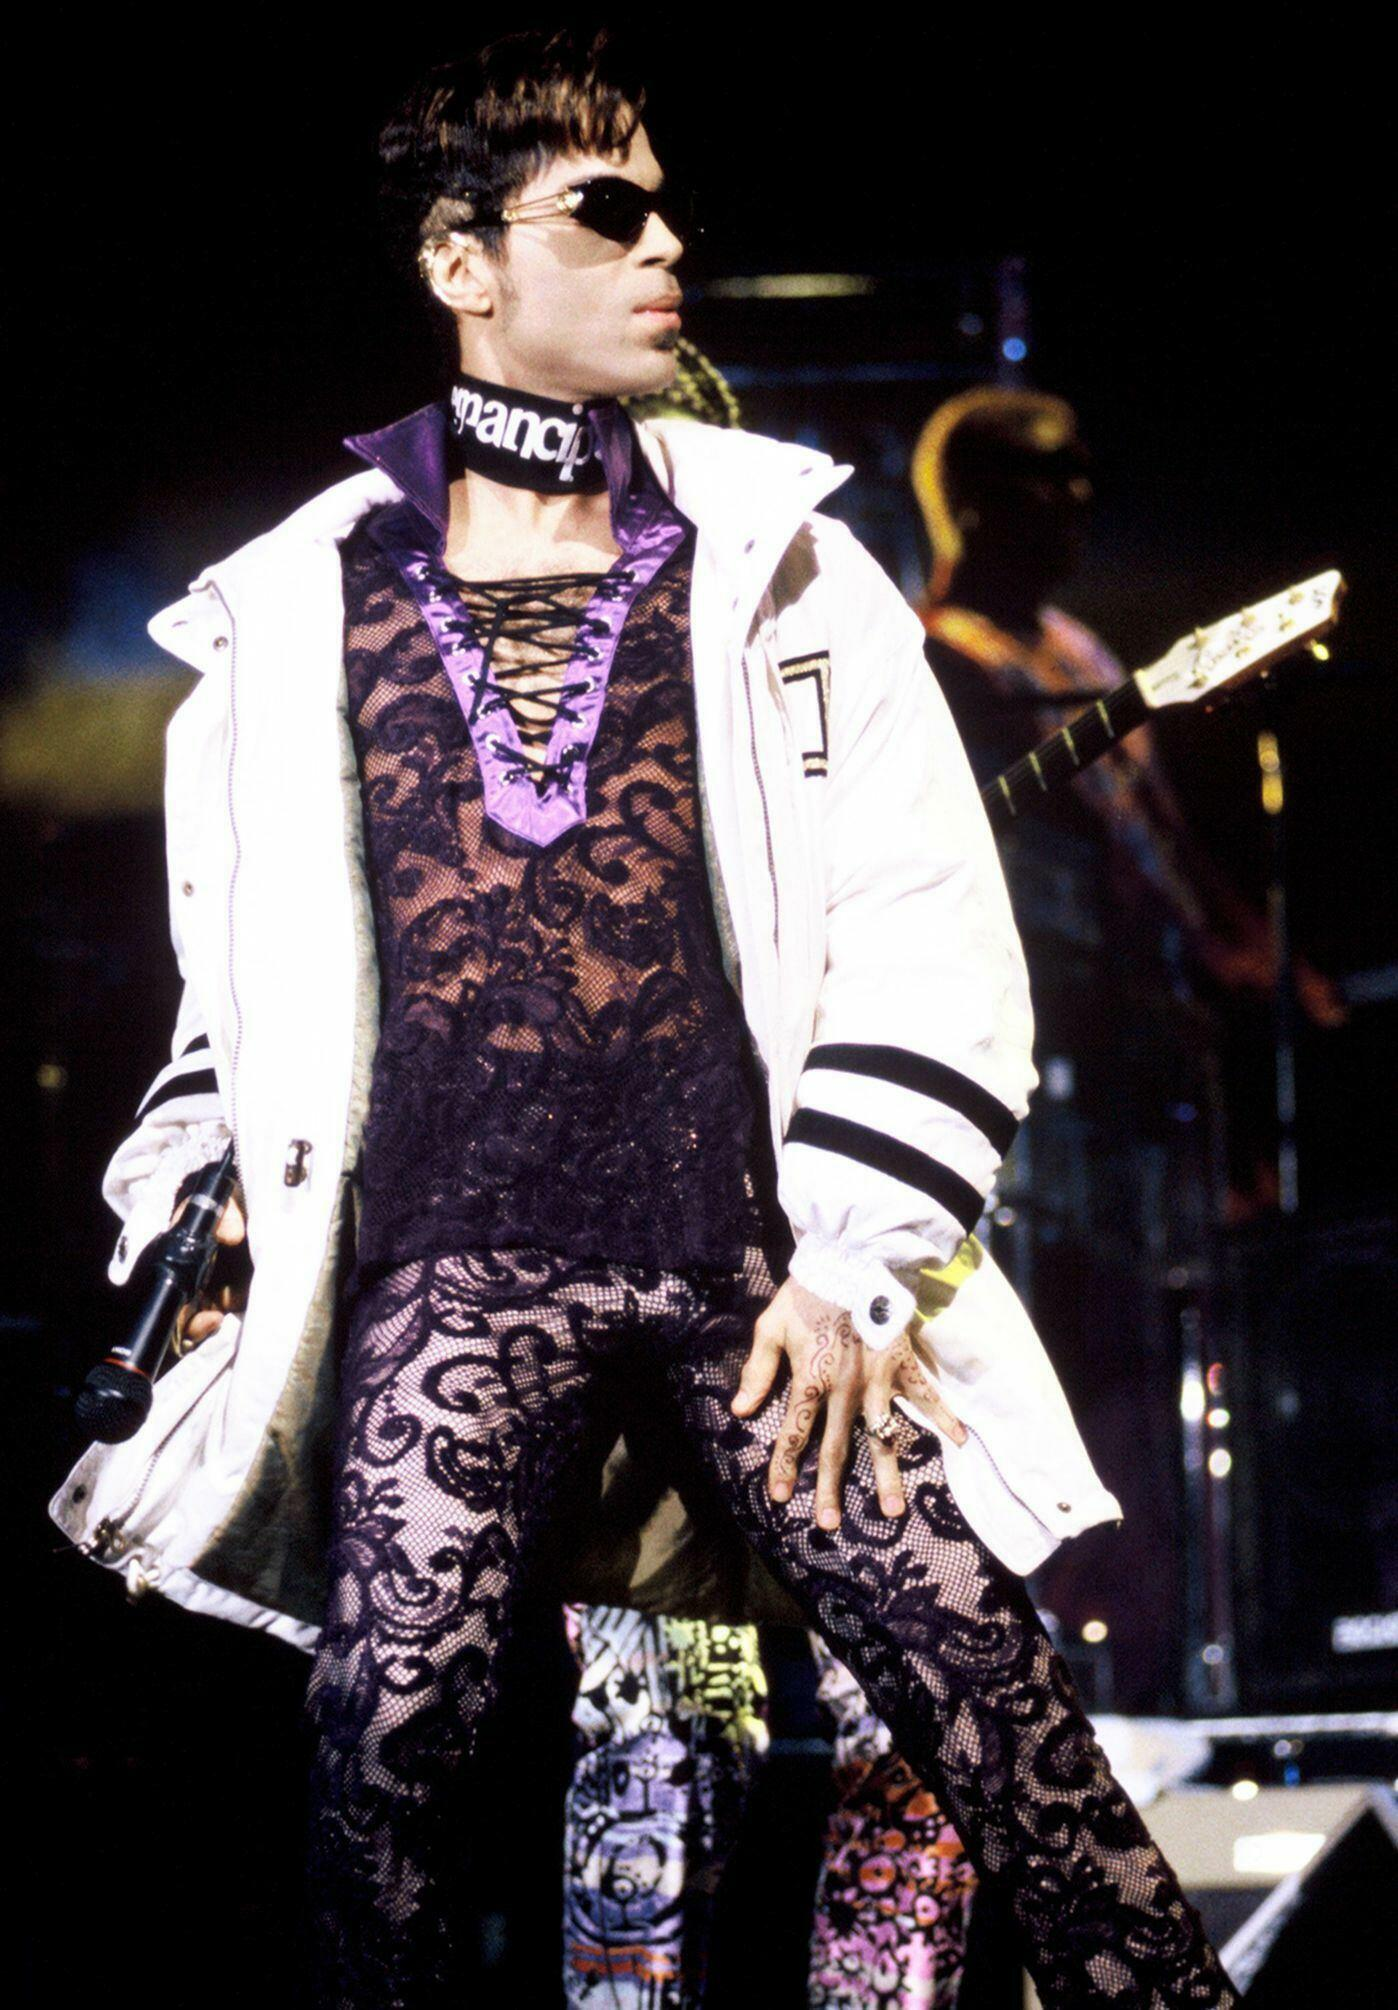 Prince performing at the San Jose State Event Center in San Jose, California